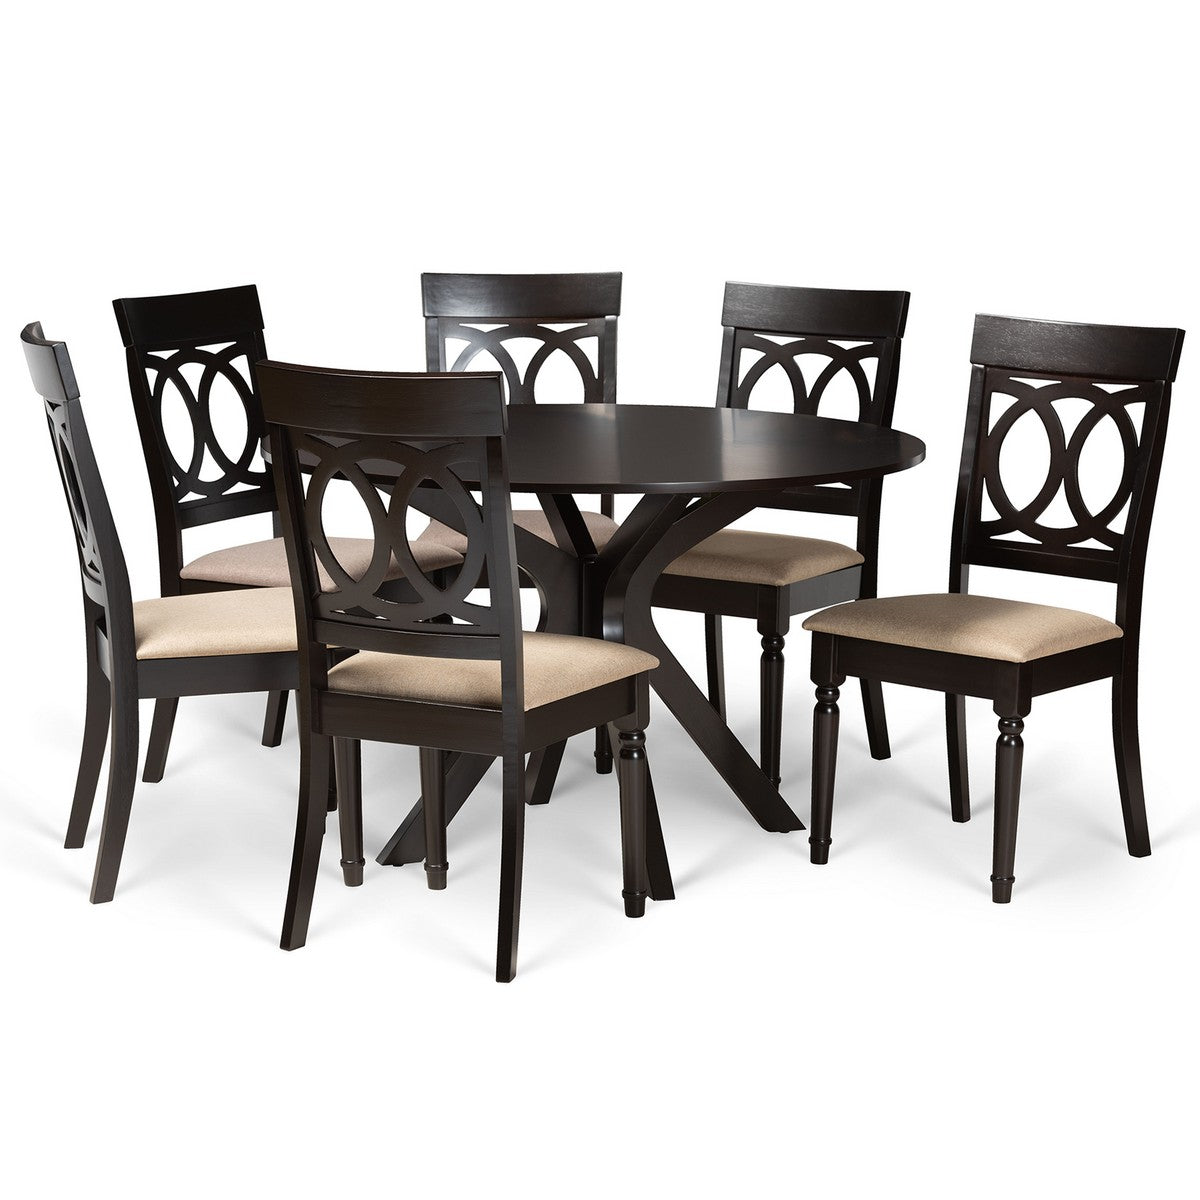 Baxton Studio Jessie Modern and Contemporary Sand Fabric Upholstered and Dark Brown Finished Wood 7-Piece Dining Set Baxton Studio-Dining Sets-Minimal And Modern - 1